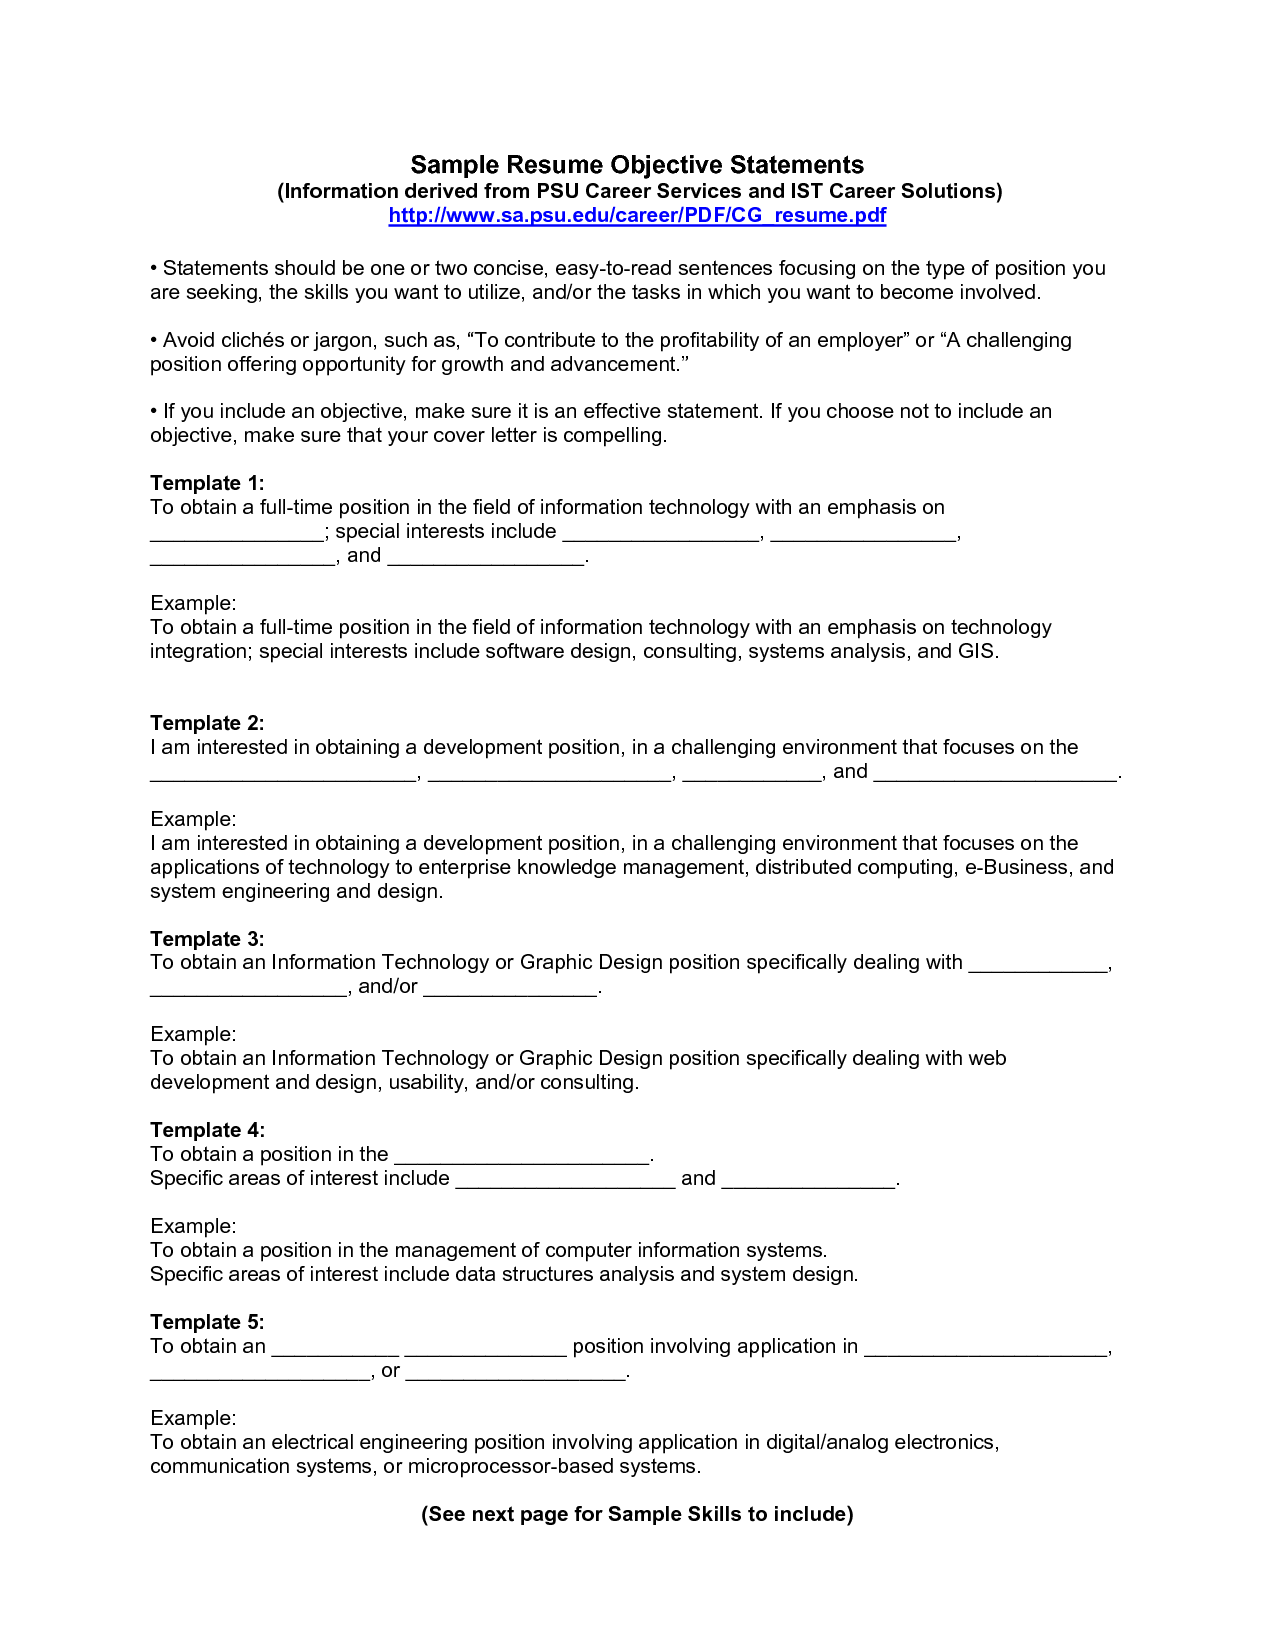 Job Objective For Resume Teachers Httpwwwteachersresumesau Teachers